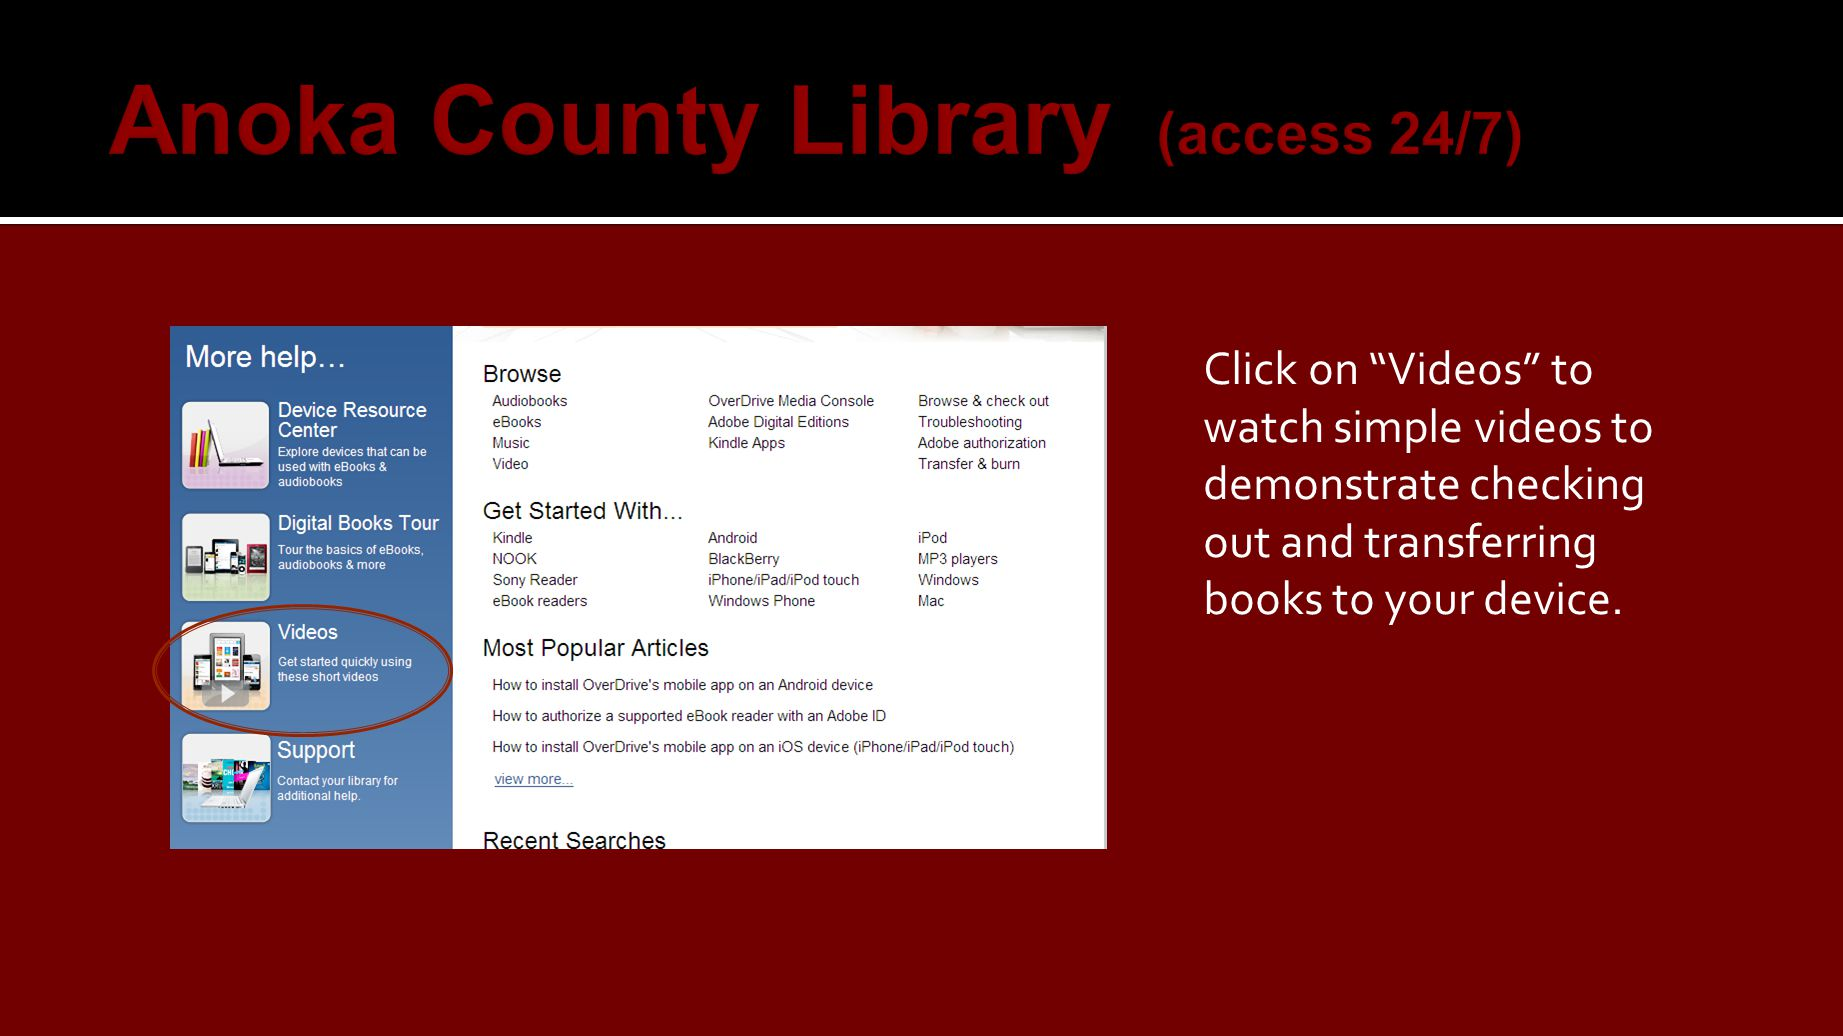 Click on Videos to watch simple videos to demonstrate checking out and transferring books to your device.